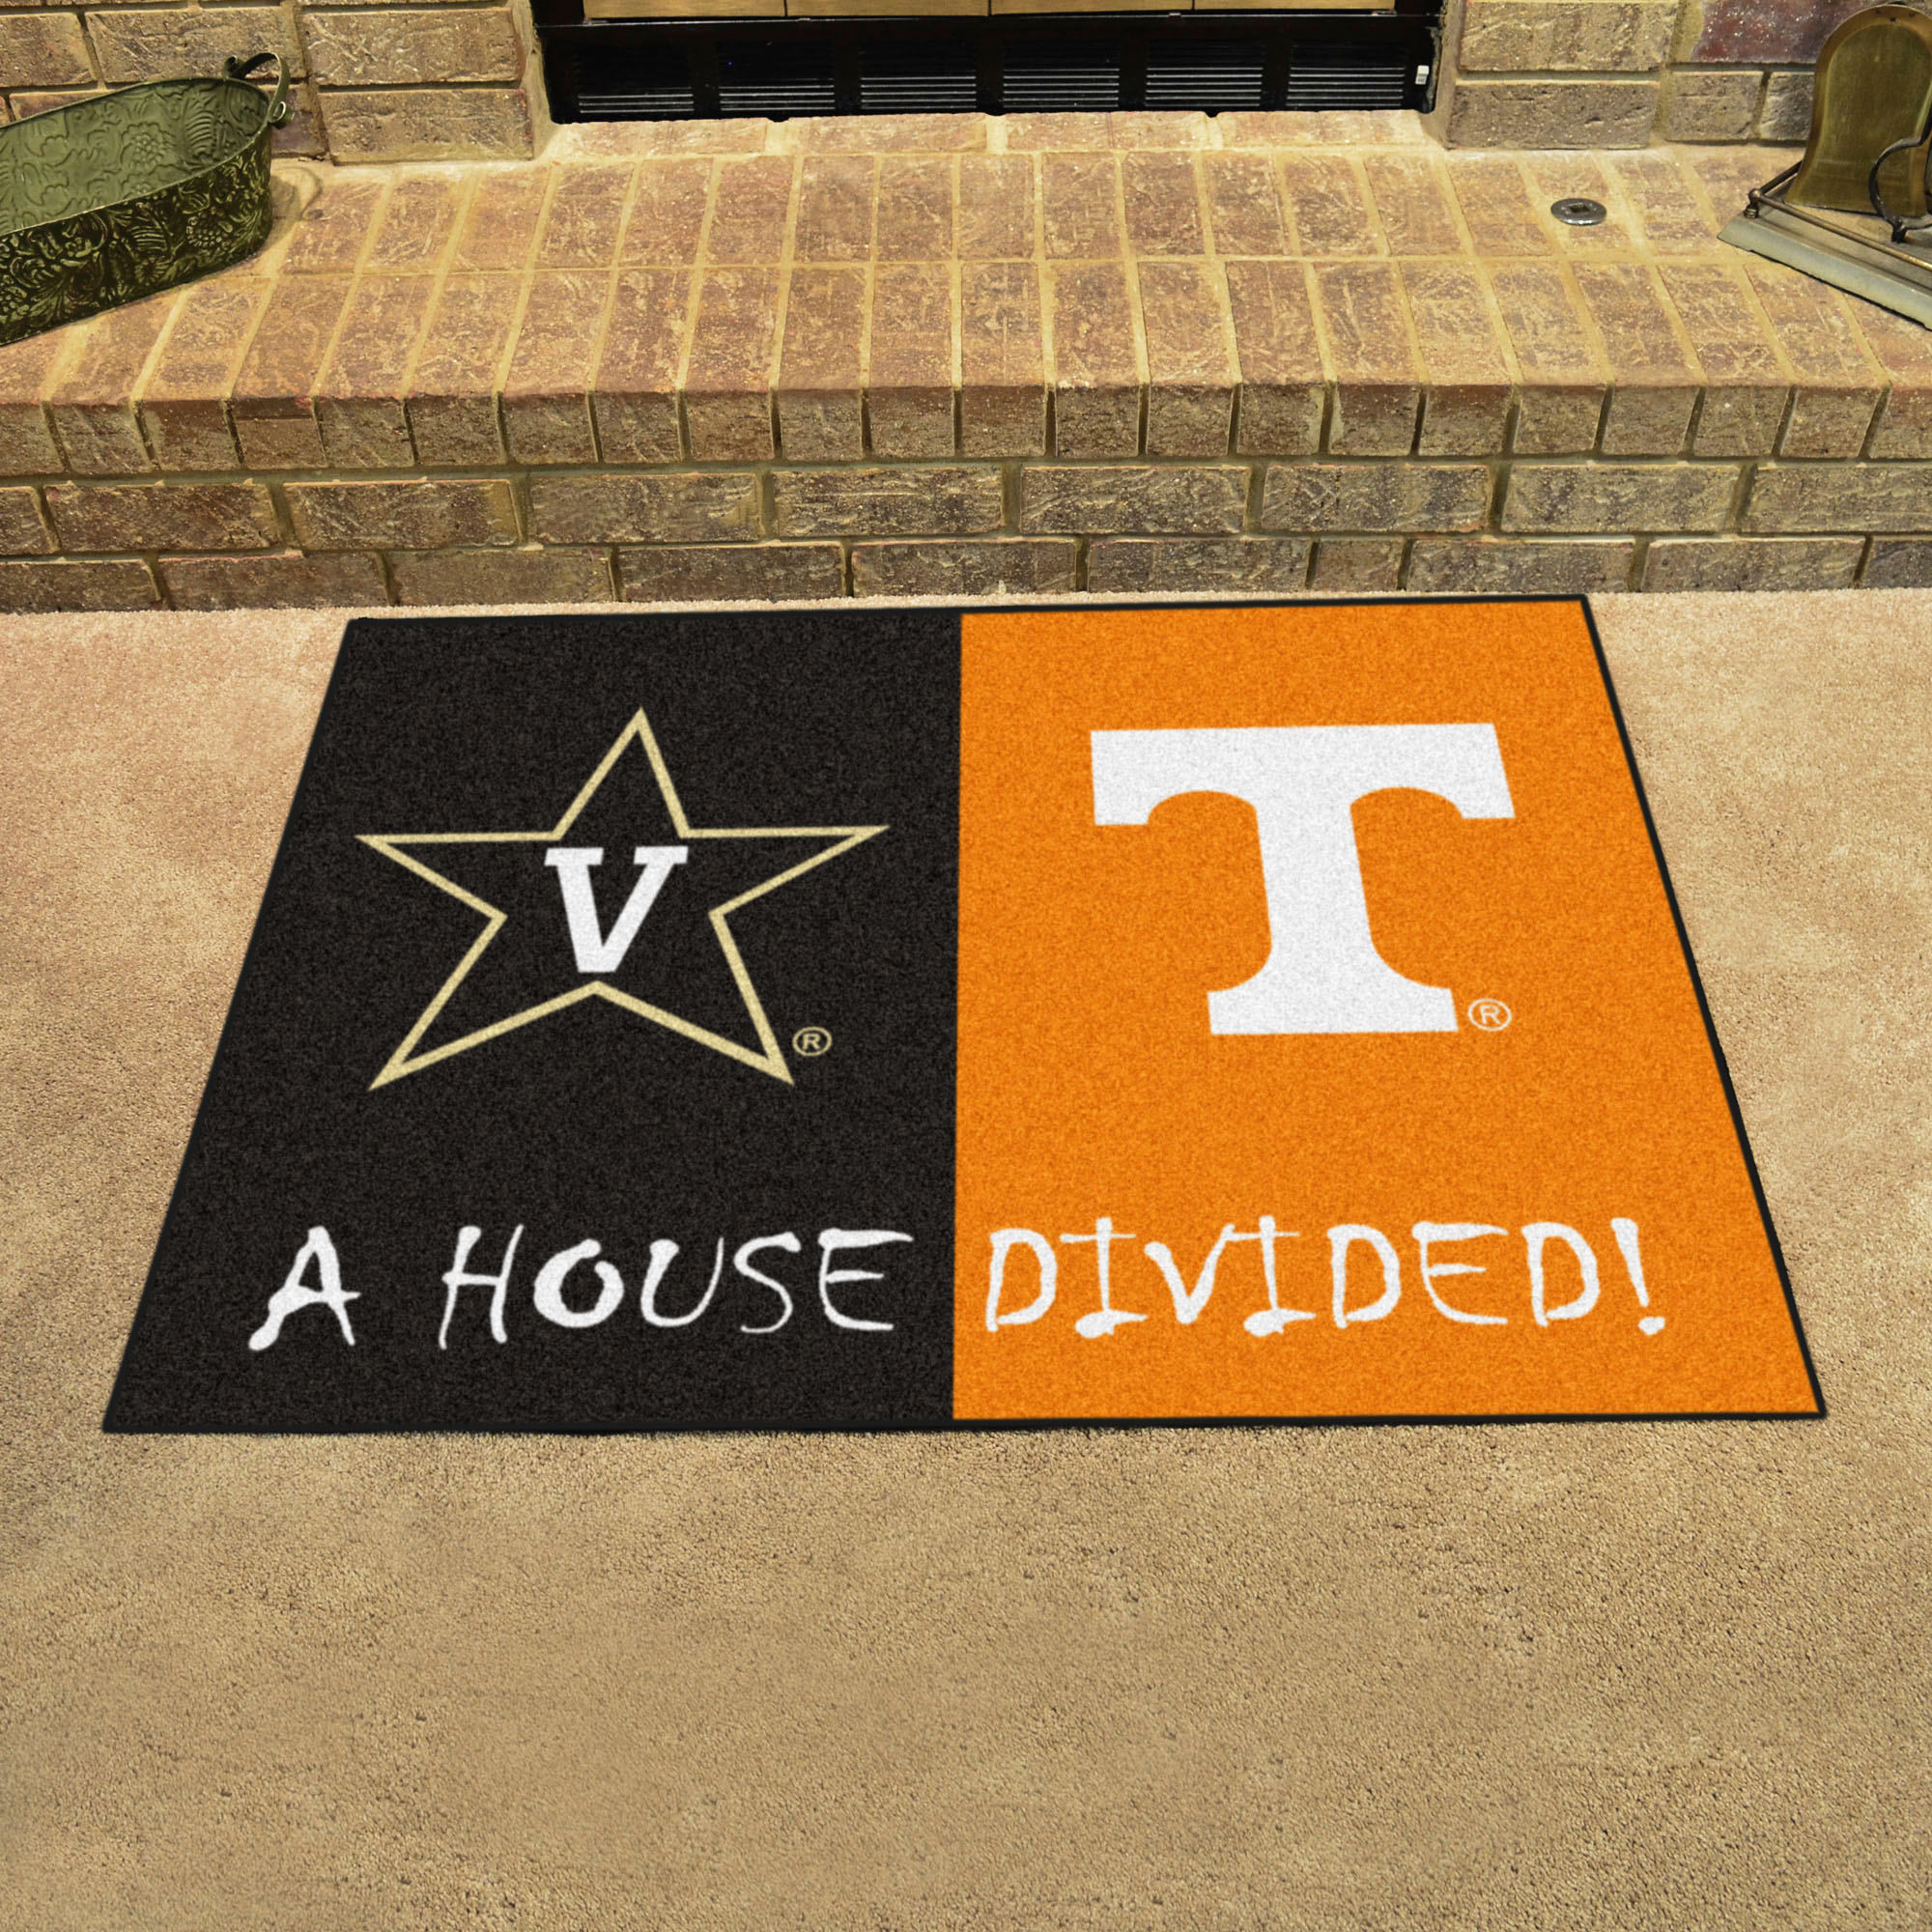 NCAA House Divided Rivalry Rug Vanderbilt Commodores - Tennessee Volunteers